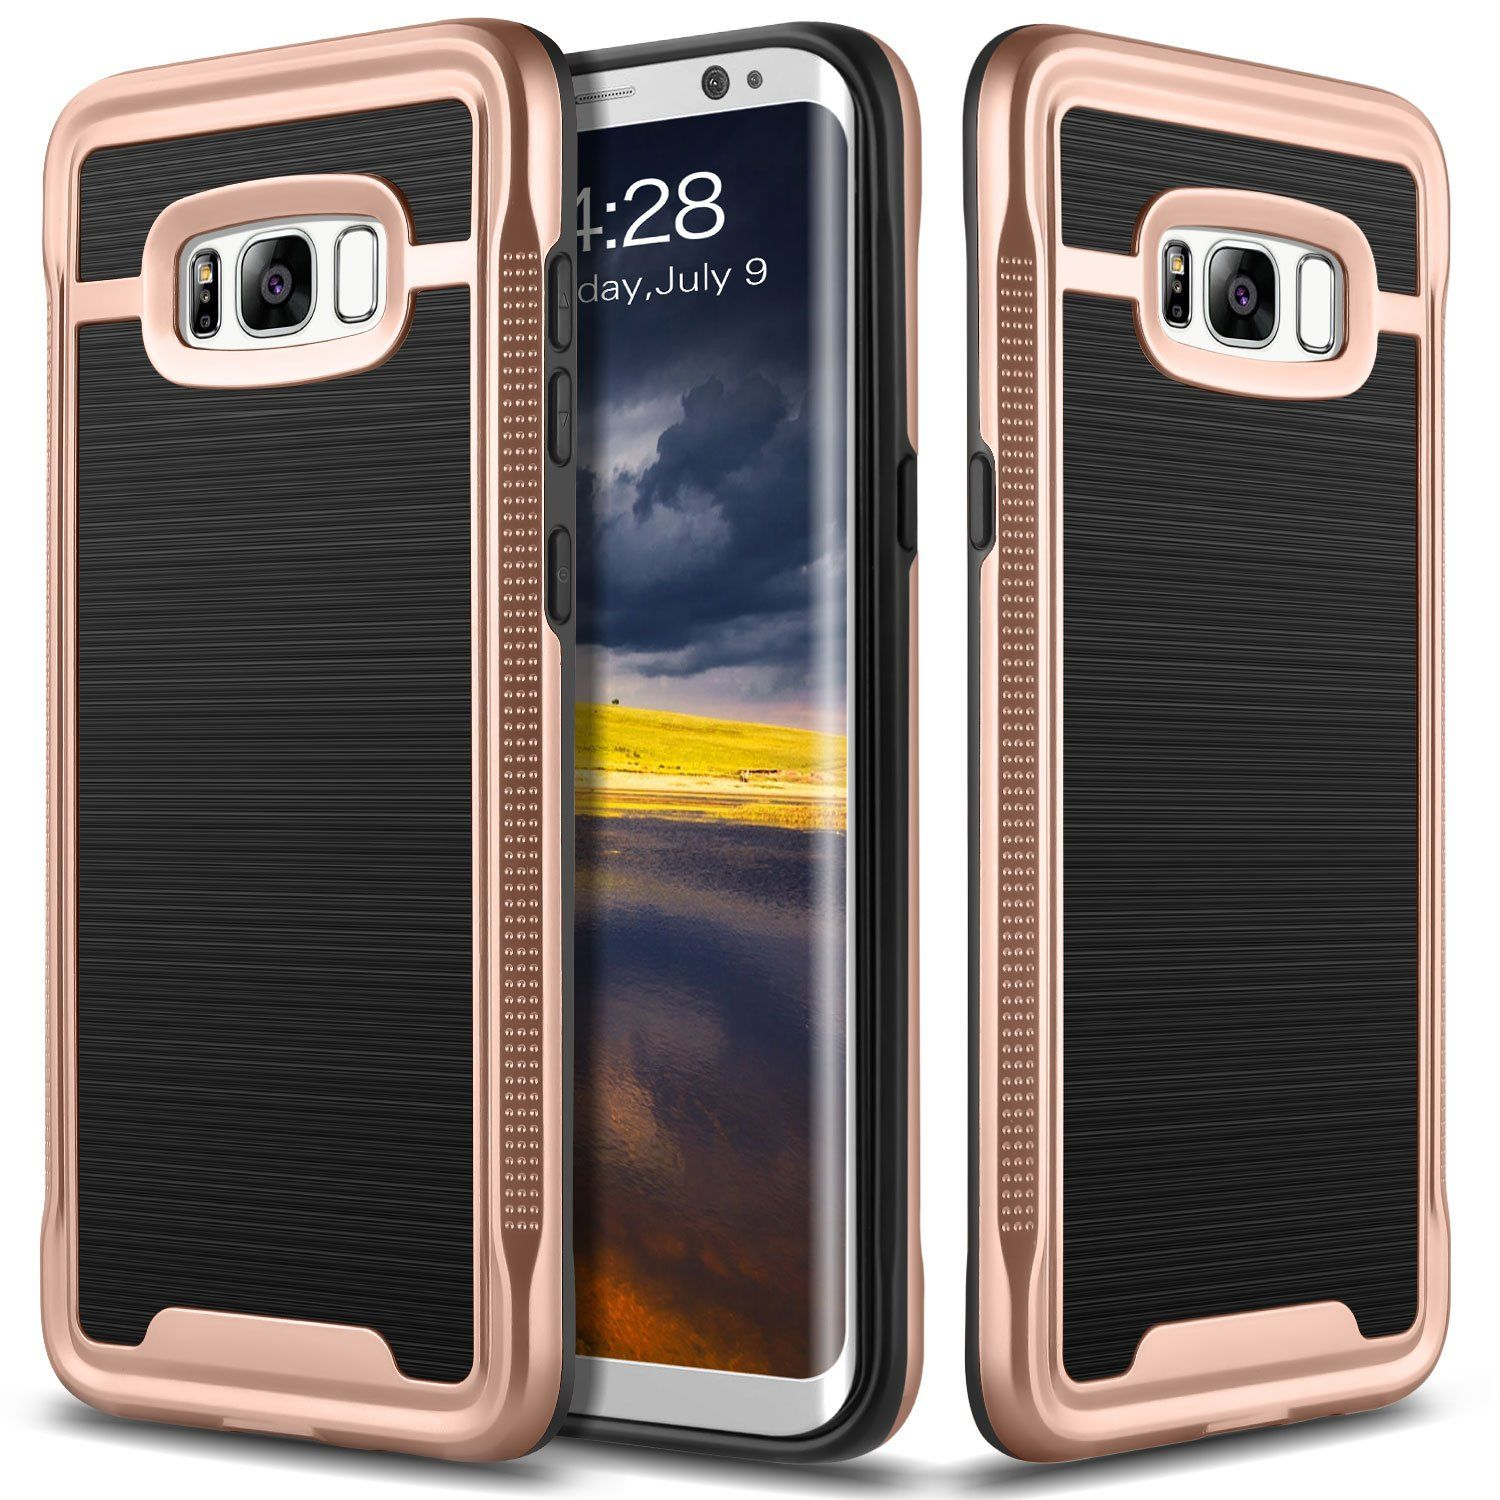 Galaxy S8 Case Ansiwee Galaxy S8 Shockproof Phone Cover Galaxy S8 Cover Soft Tpu Bumper Hard Pc Case Brushed Pc Texture Protective Armor For Samsung Galaxy S Samsung Galaxy Phone Pc